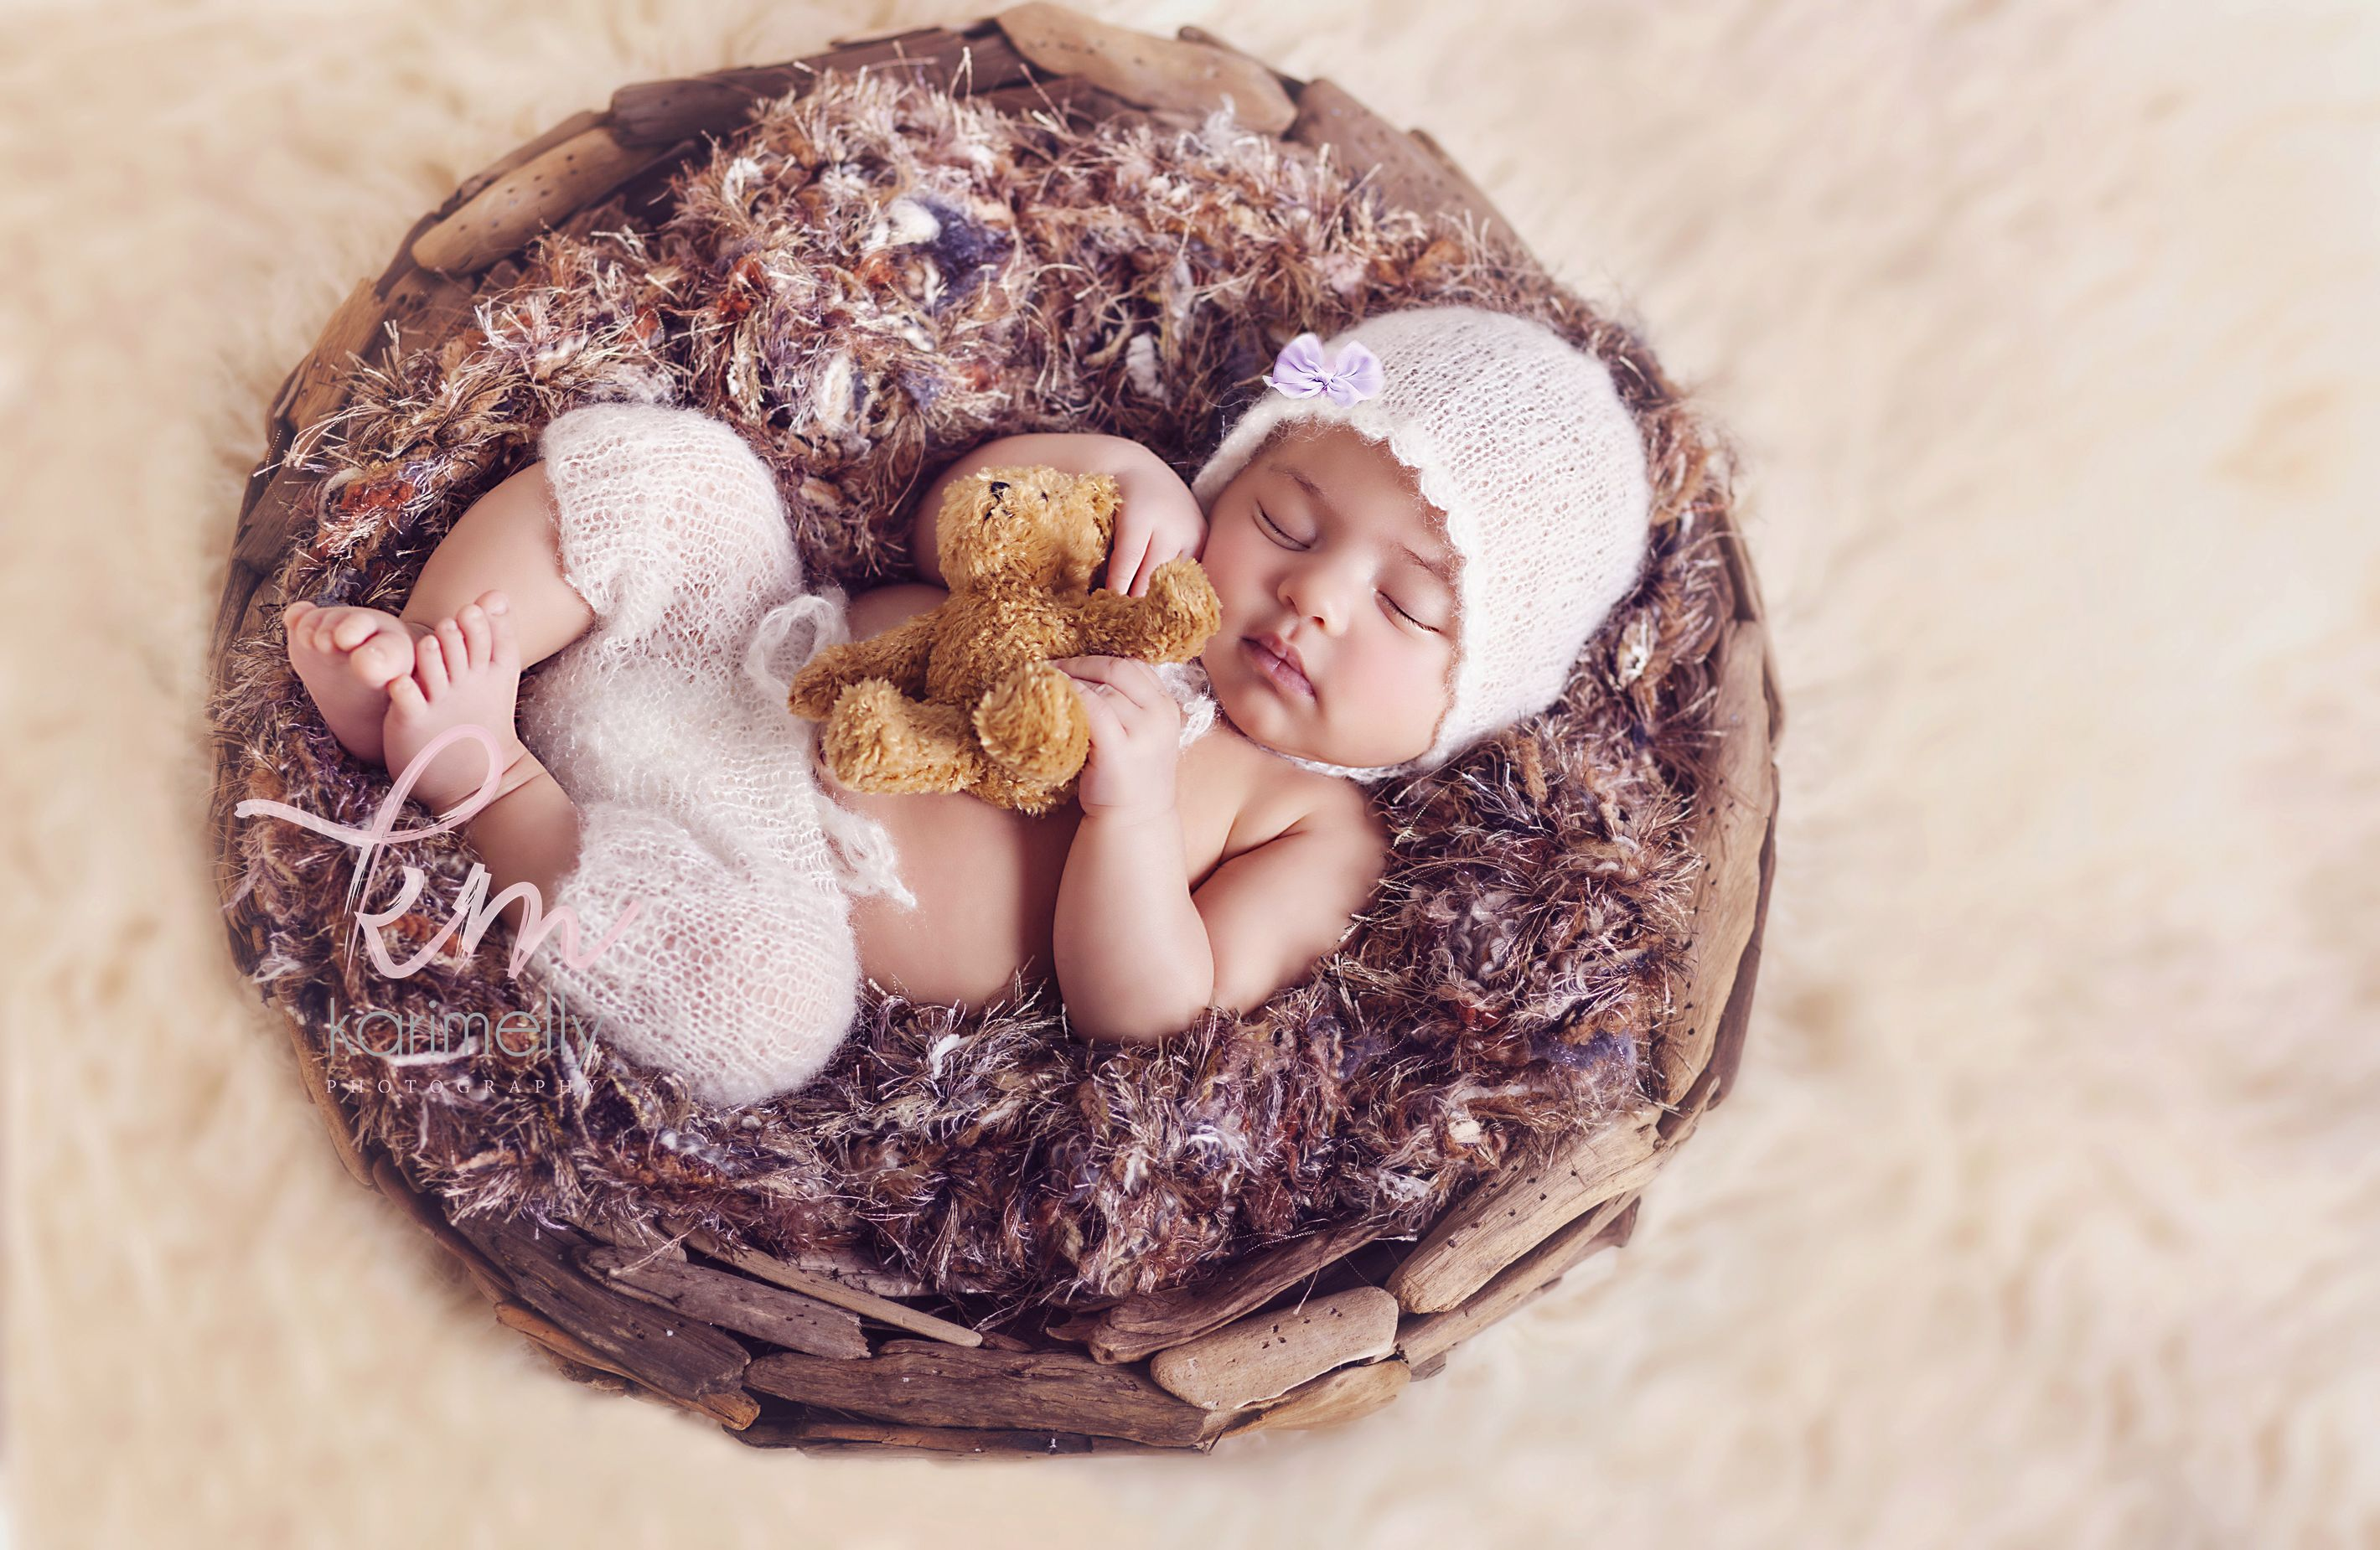 Newborn photography,teddy,wooden bowl,newborn baby girl